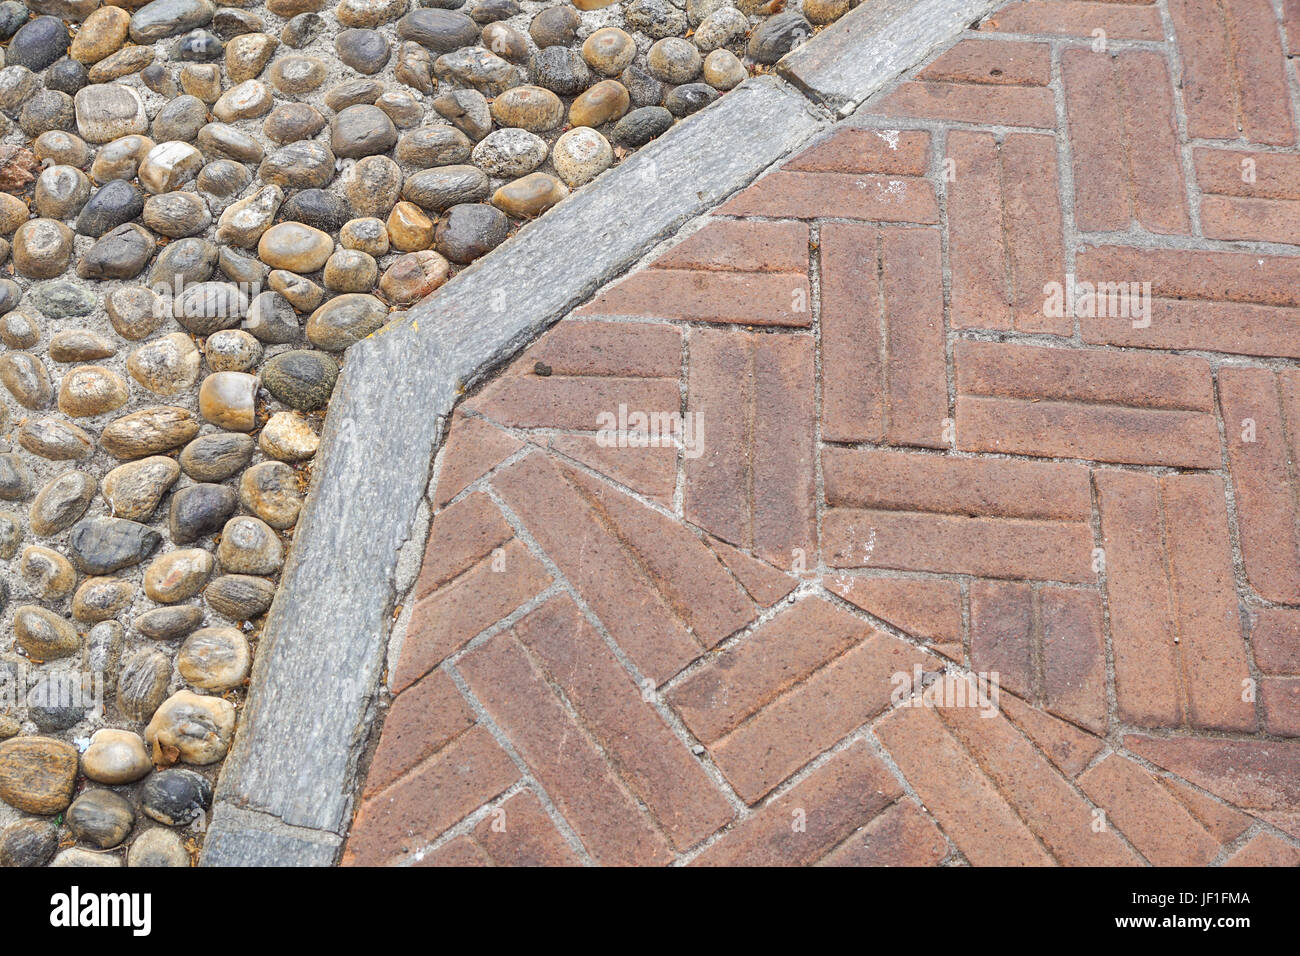 Floor design with terrace tiles and ornamental gravel various floor design with terrace tiles and ornamental gravel various materials for flooring in the garden building materials for gardening dailygadgetfo Images